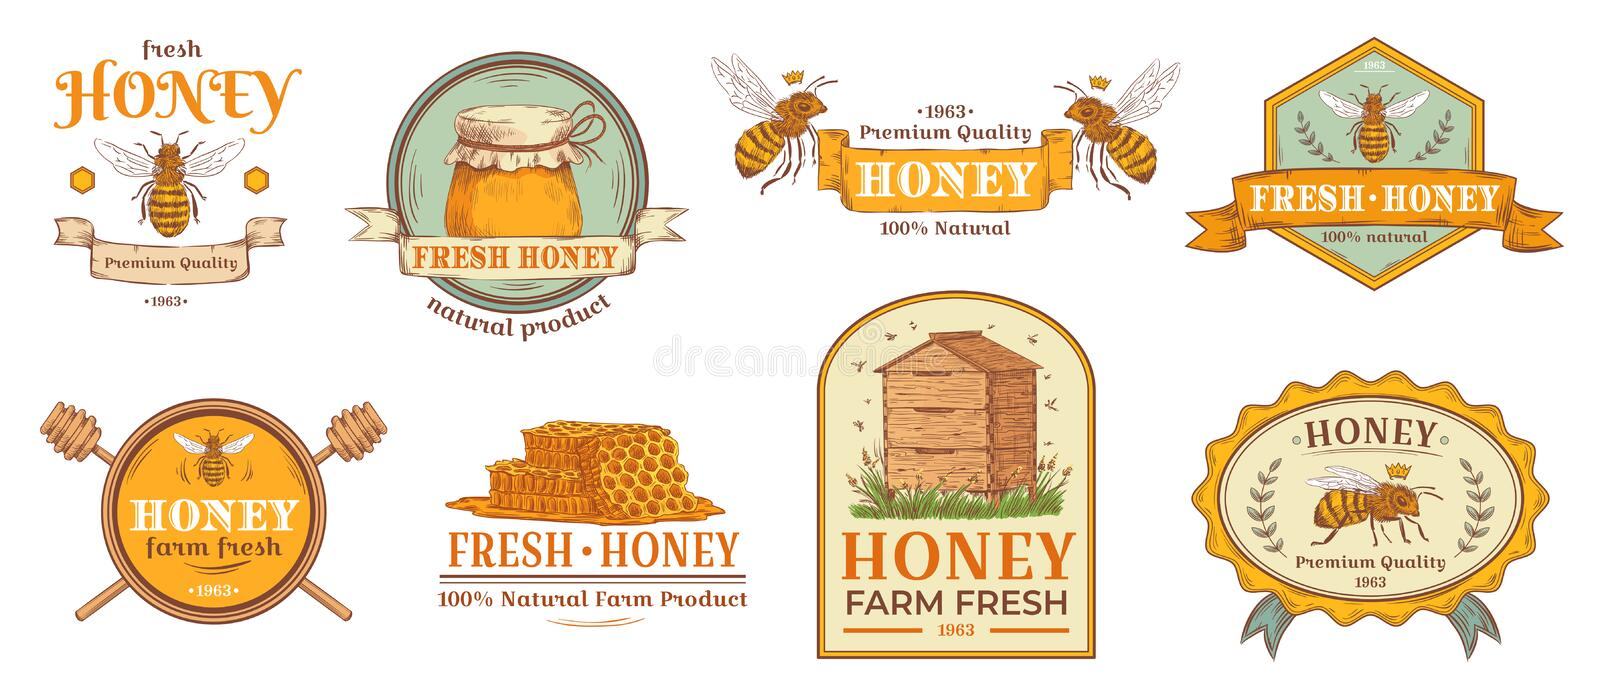 Honey badge. Natural bee farm product label, organic beekeeping pollen and bees hive emblem badges vector illustration. Honey badge. Natural bee farm product vector illustration